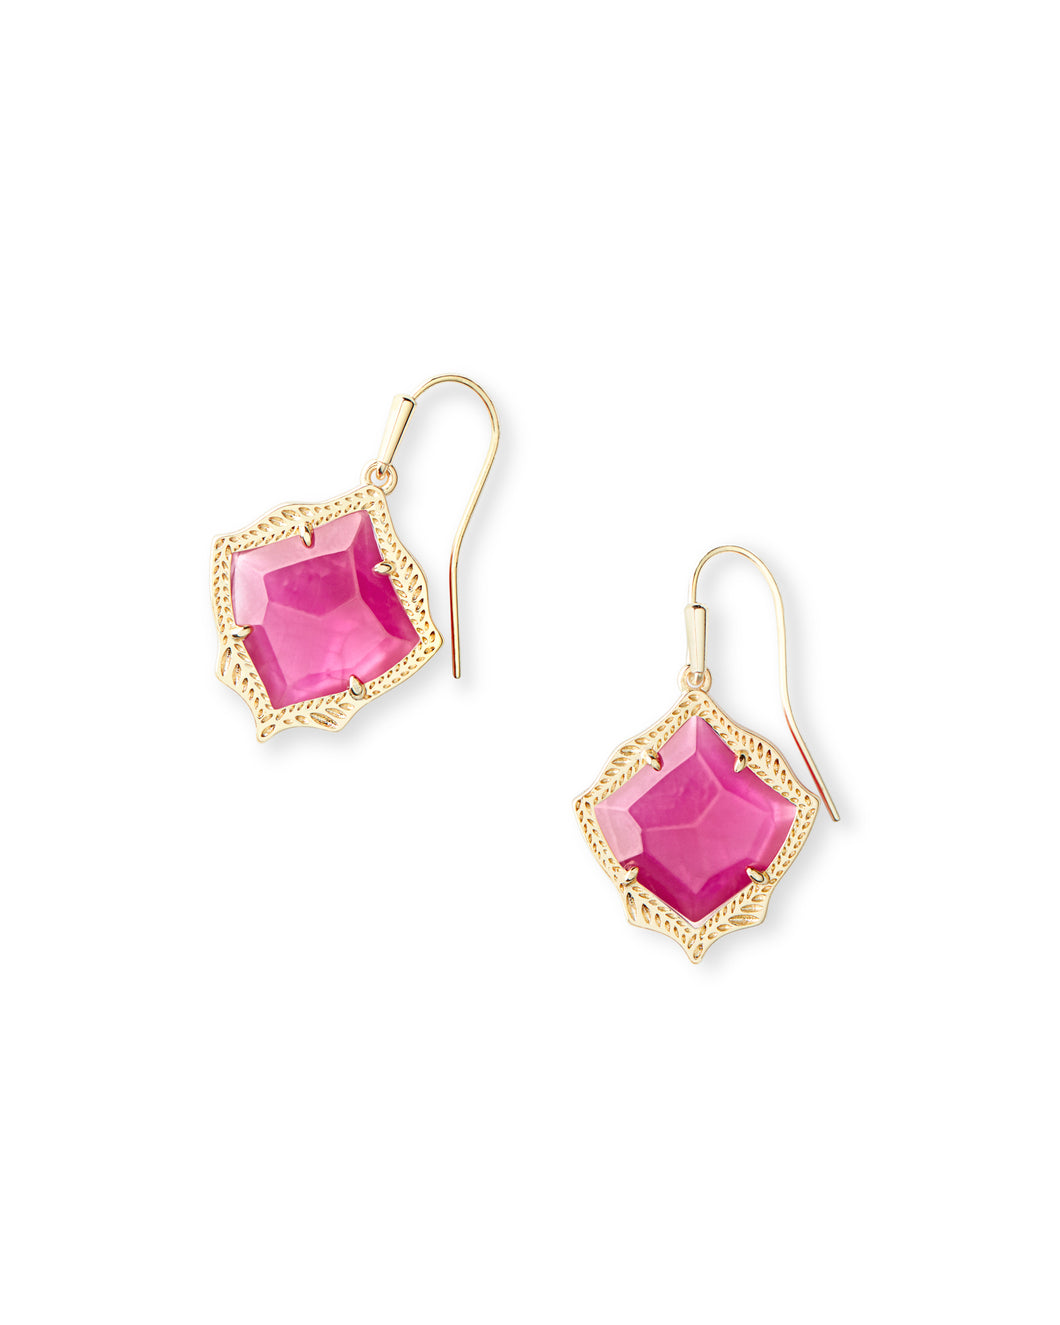 KYRIE EARRING GOLD AZALEA ILLUSION